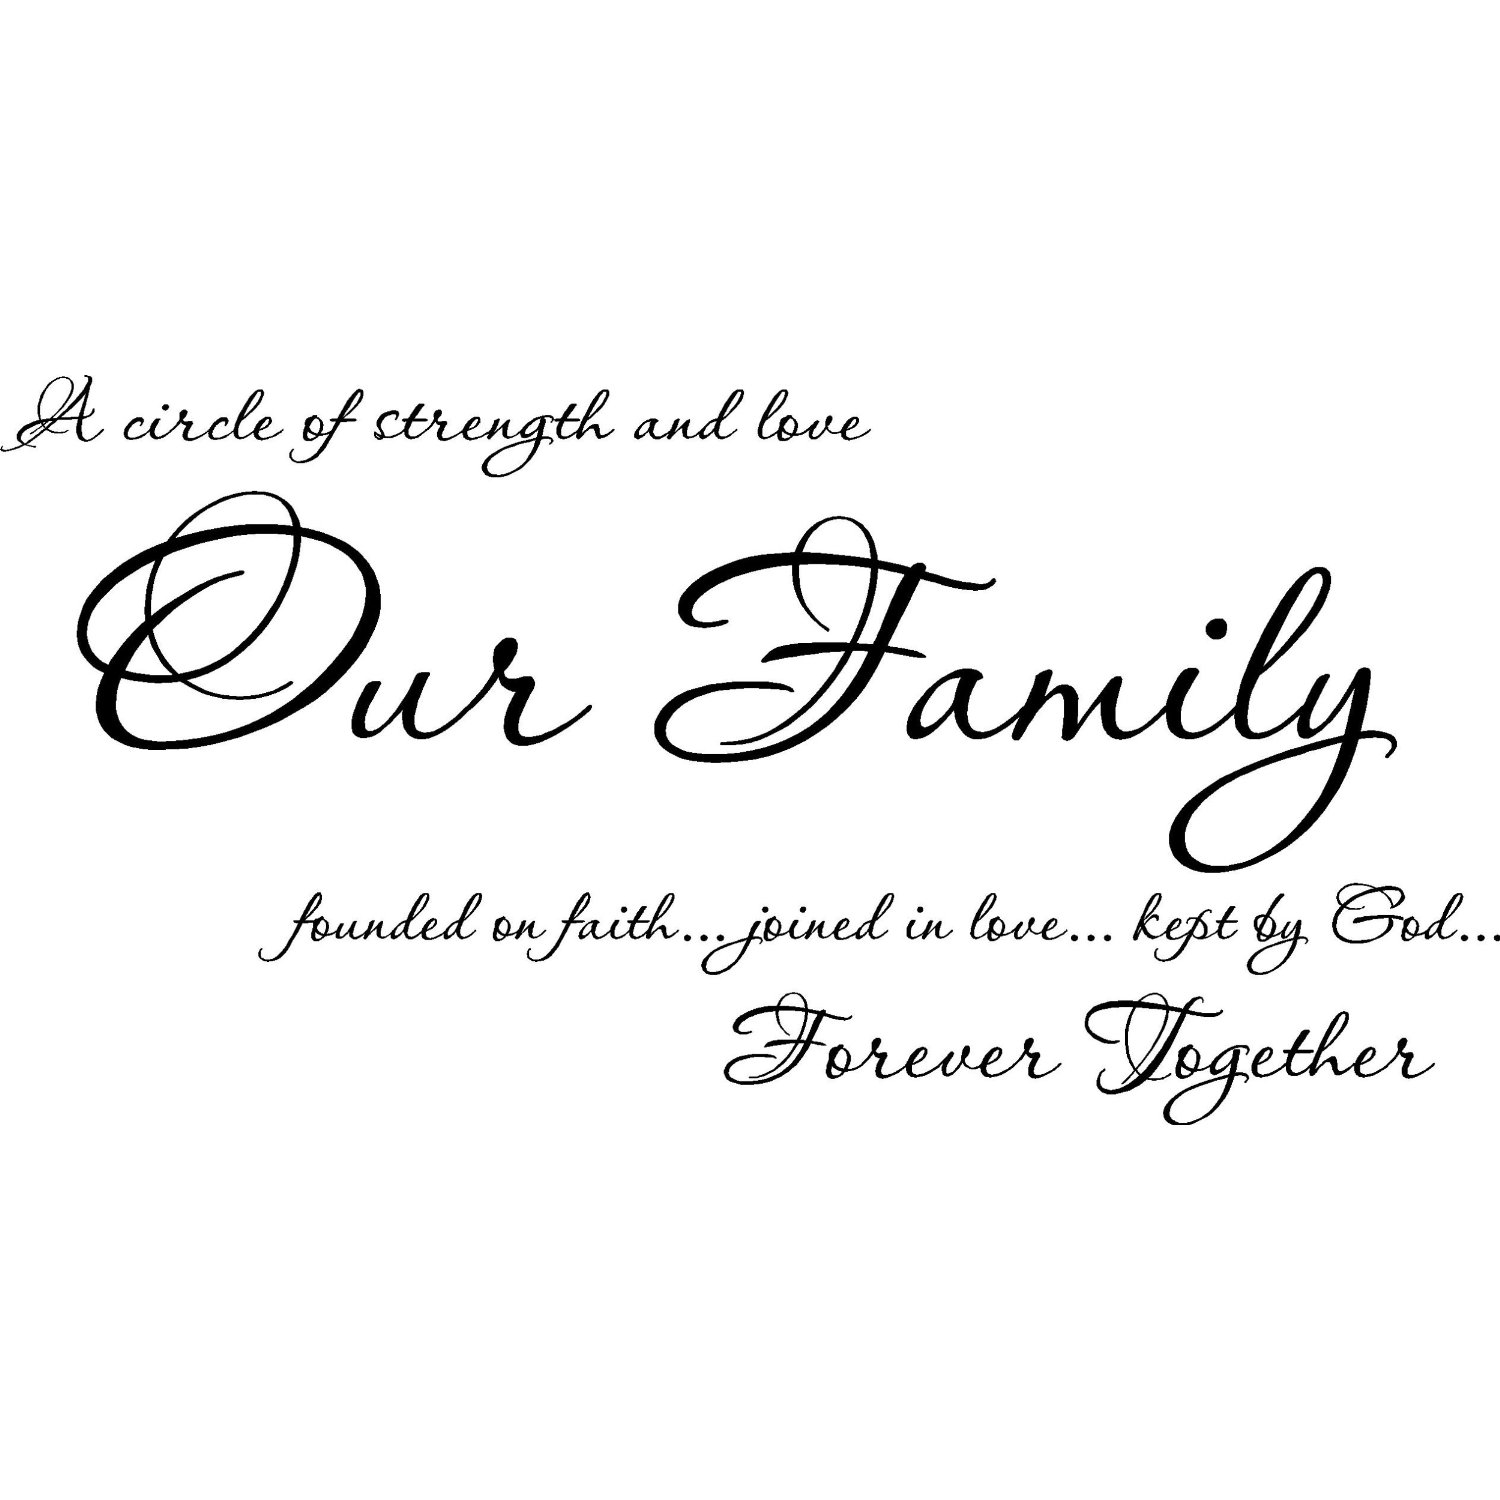 Best Of Quotes On Family Love and Support | Thousands of Inspiration